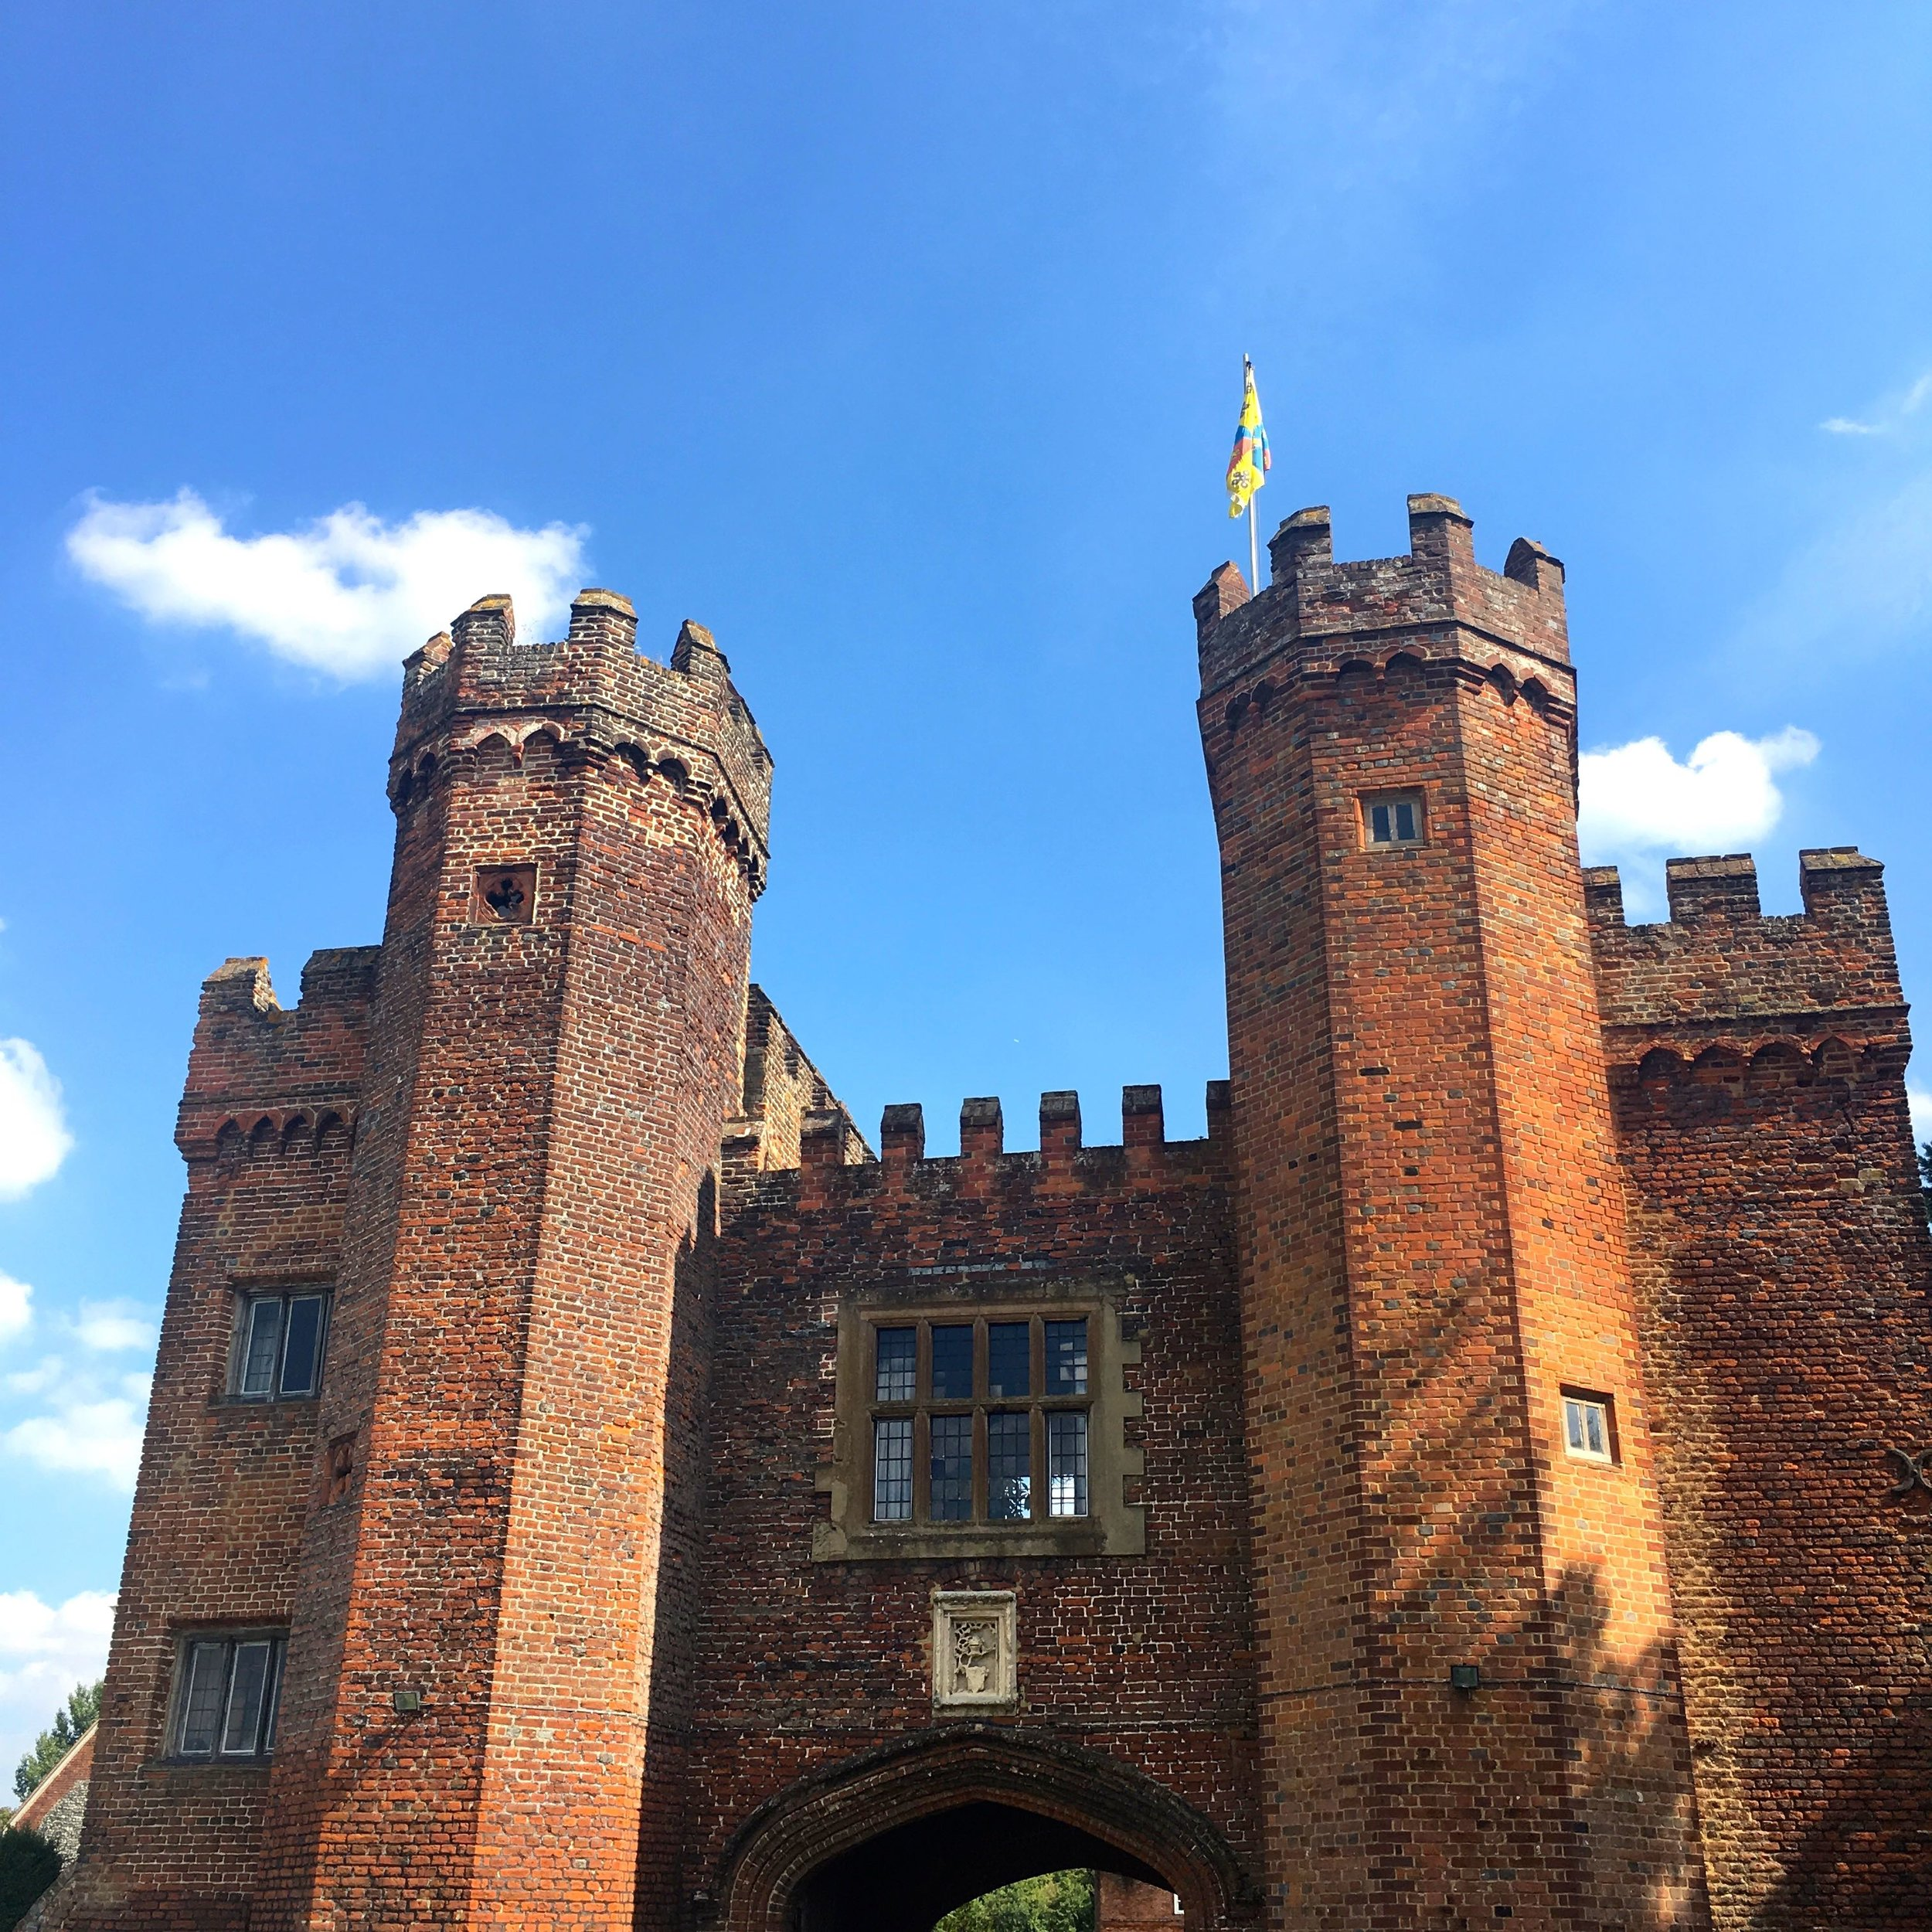 LULLINGSTONE CASTLE